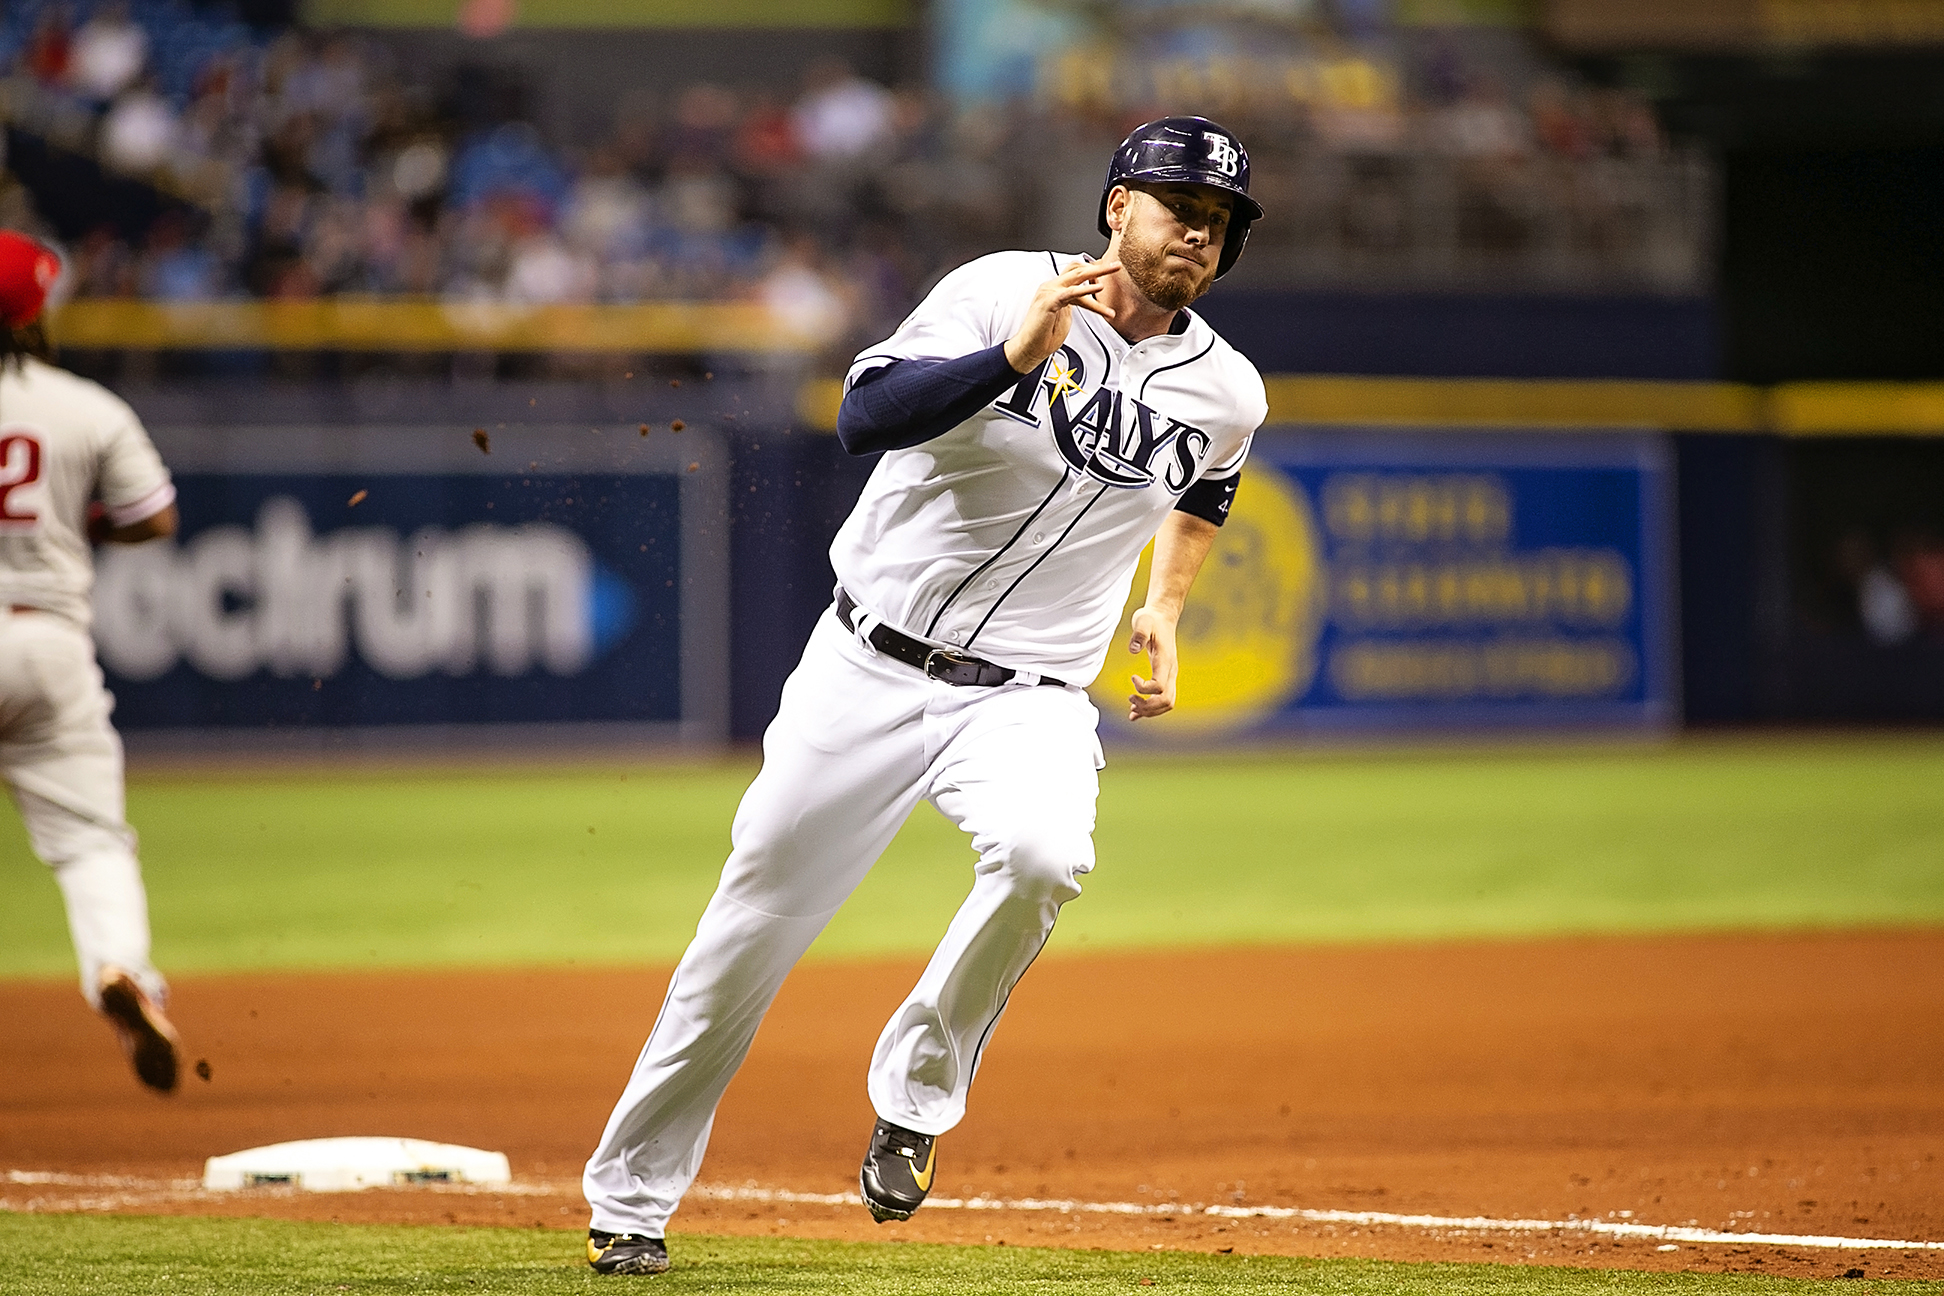 Cron hit another home run for Rays./CARMEN MANDATO